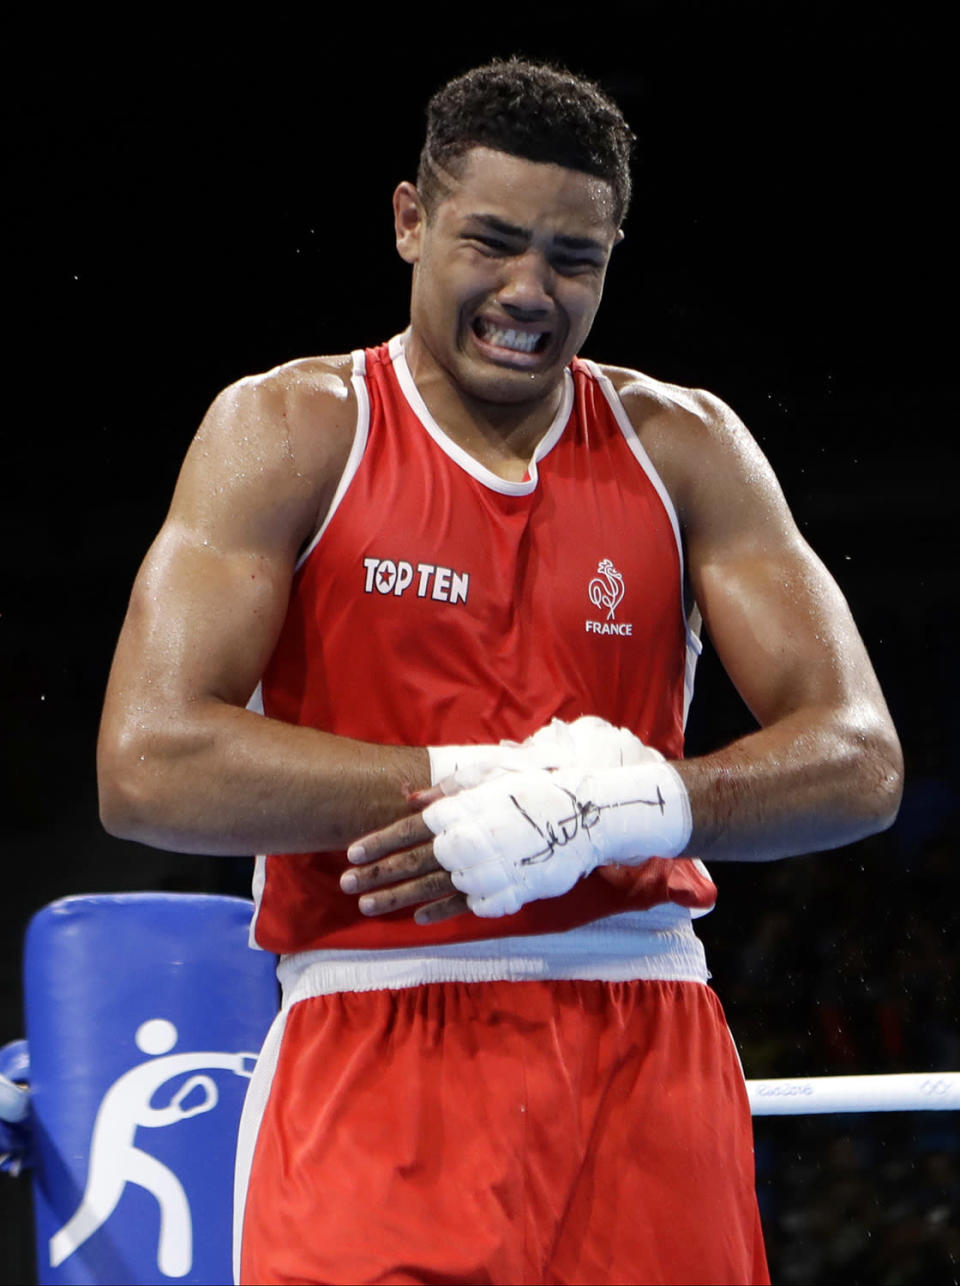 <p>France's Paul Omba Biongolo cries after losing a match against Azerbaijan's Abdullayev Abdulkadir during a men's heavyweight 91-kg preliminary boxing match at the 2016 Summer Olympics in Rio de Janeiro, Brazil, Monday, Aug. 8, 2016. (AP Photo/Frank Franklin II) </p>